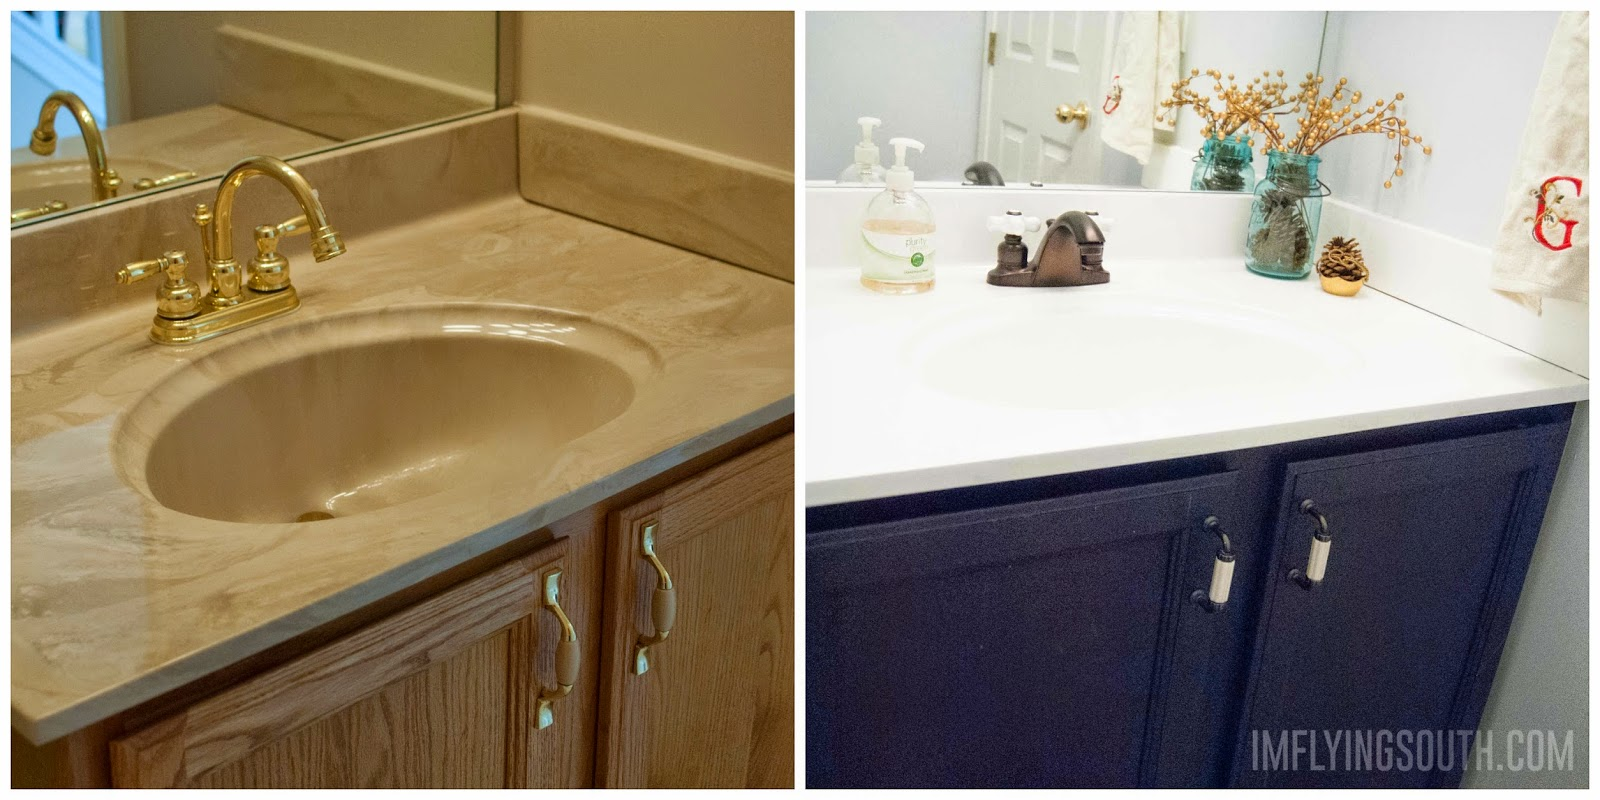 Charmant Painted Bathroom Sink Tutorial Before And After   Iu0027m Flying South Featured  On @